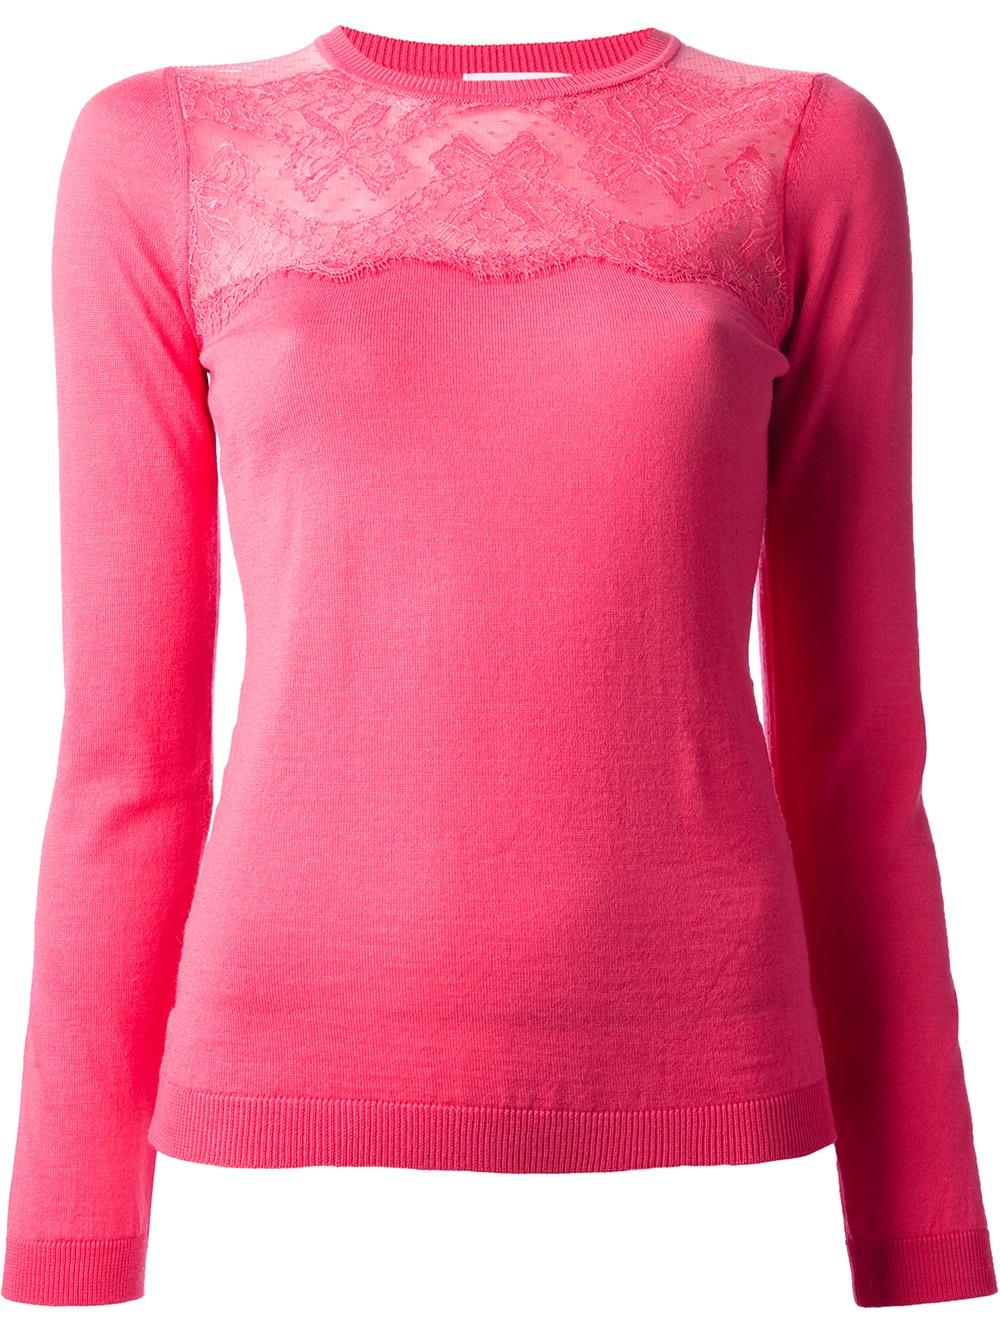 Red valentino Floral Lace Sweater in Pink | Lyst